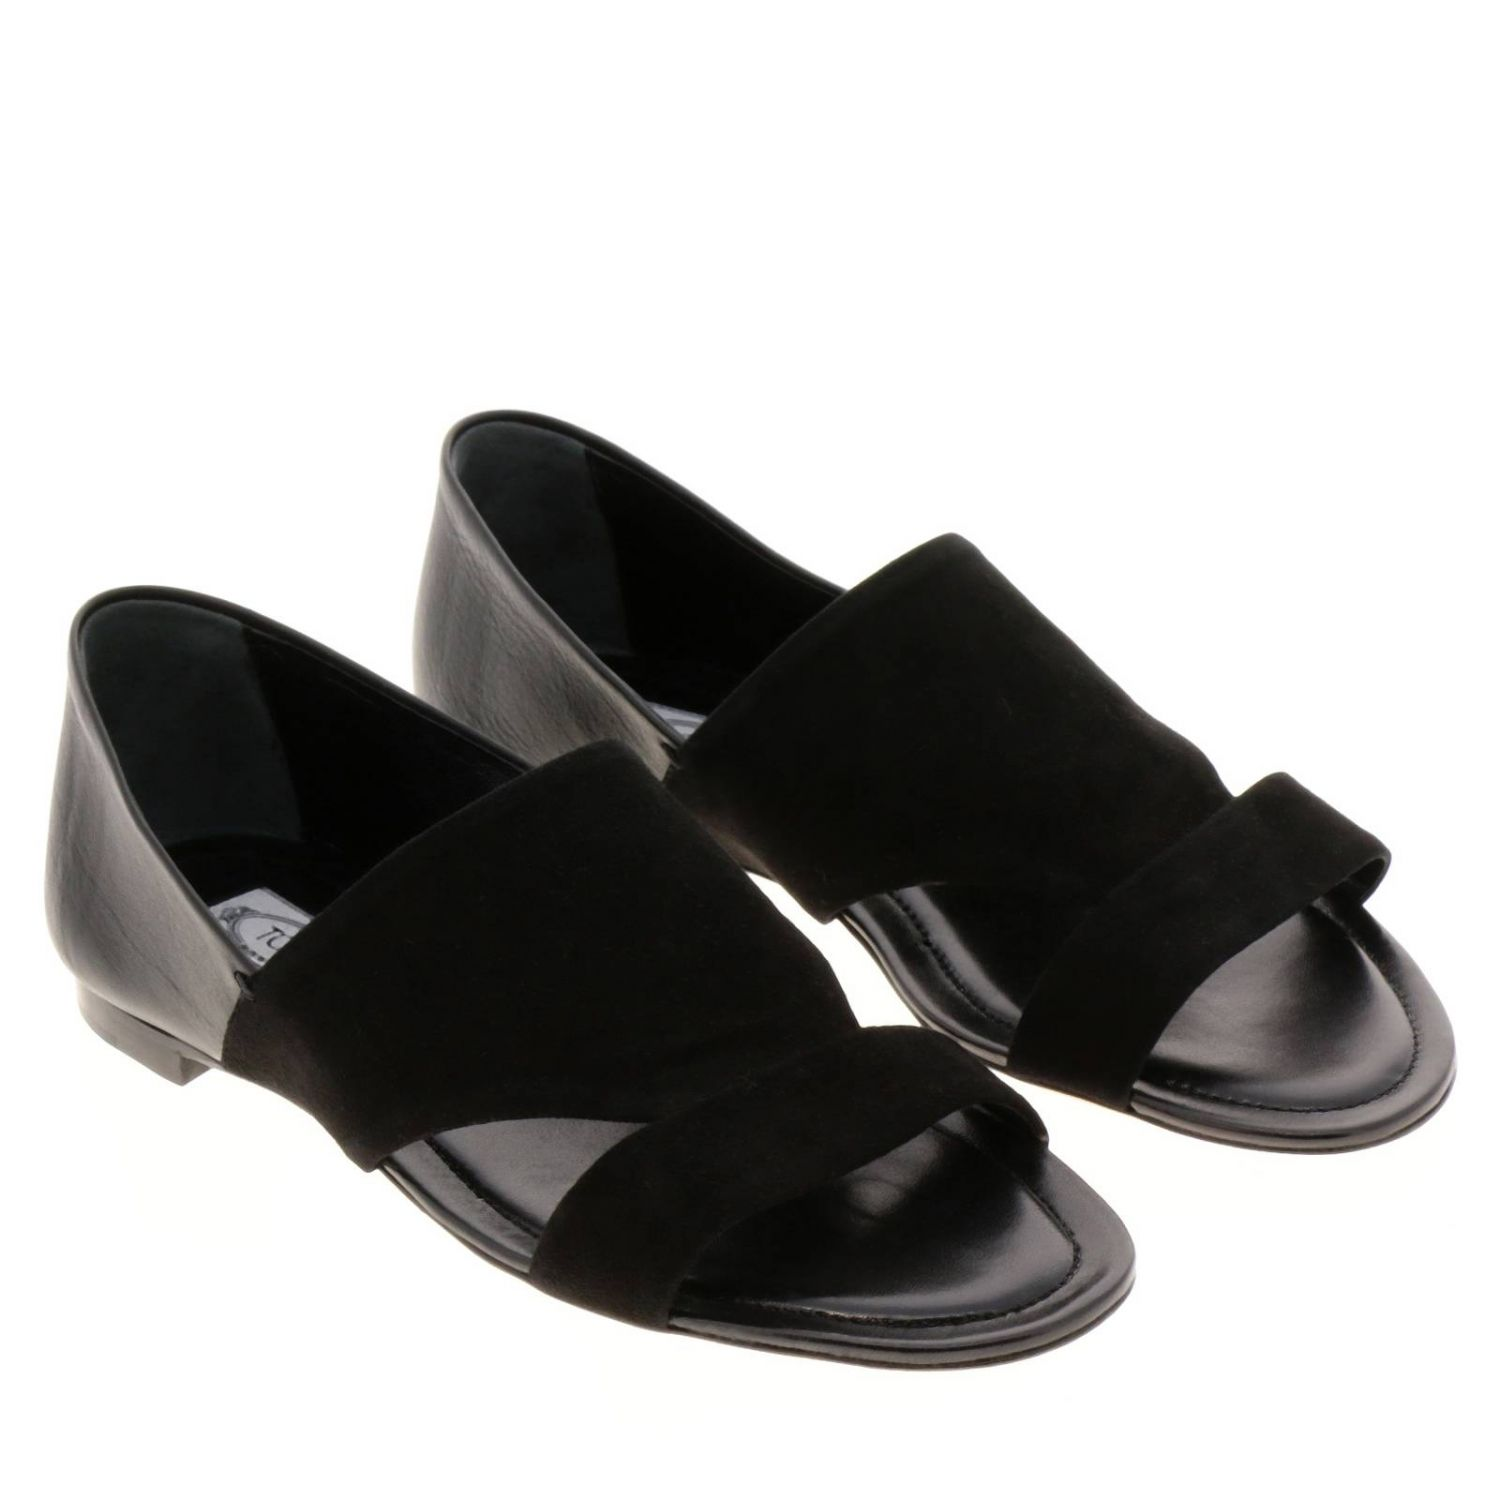 Sandales plates Tods: Chaussures femme Tod's noir 2